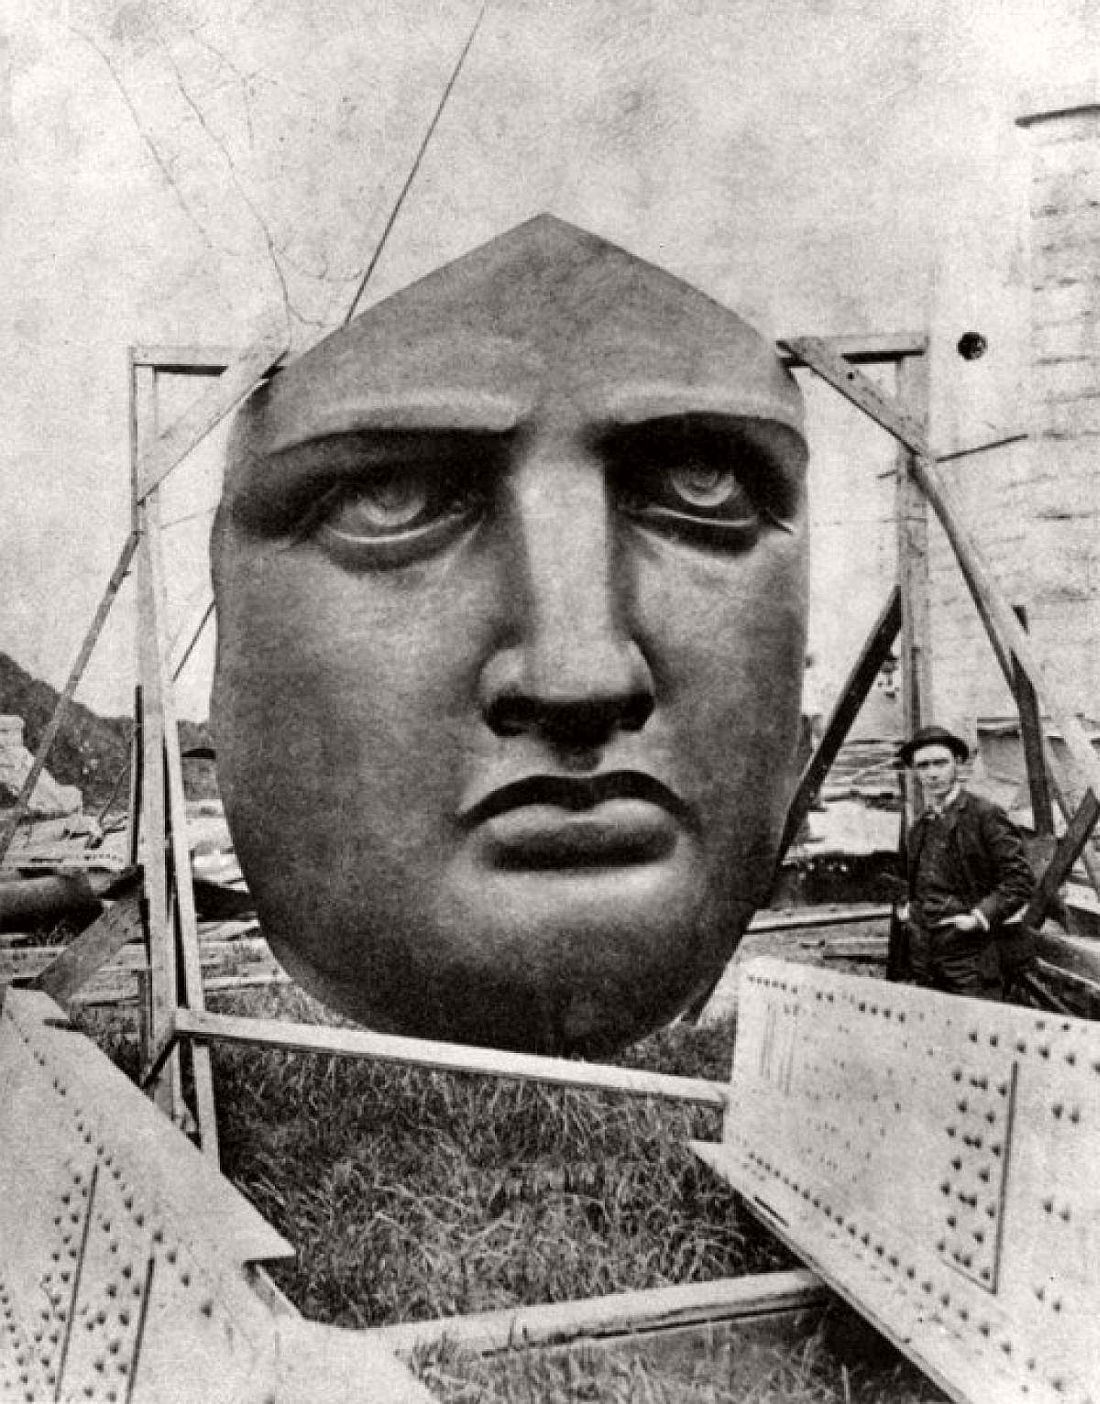 vintage-images-of-statue-of-liberty-under-construction-1880s-01